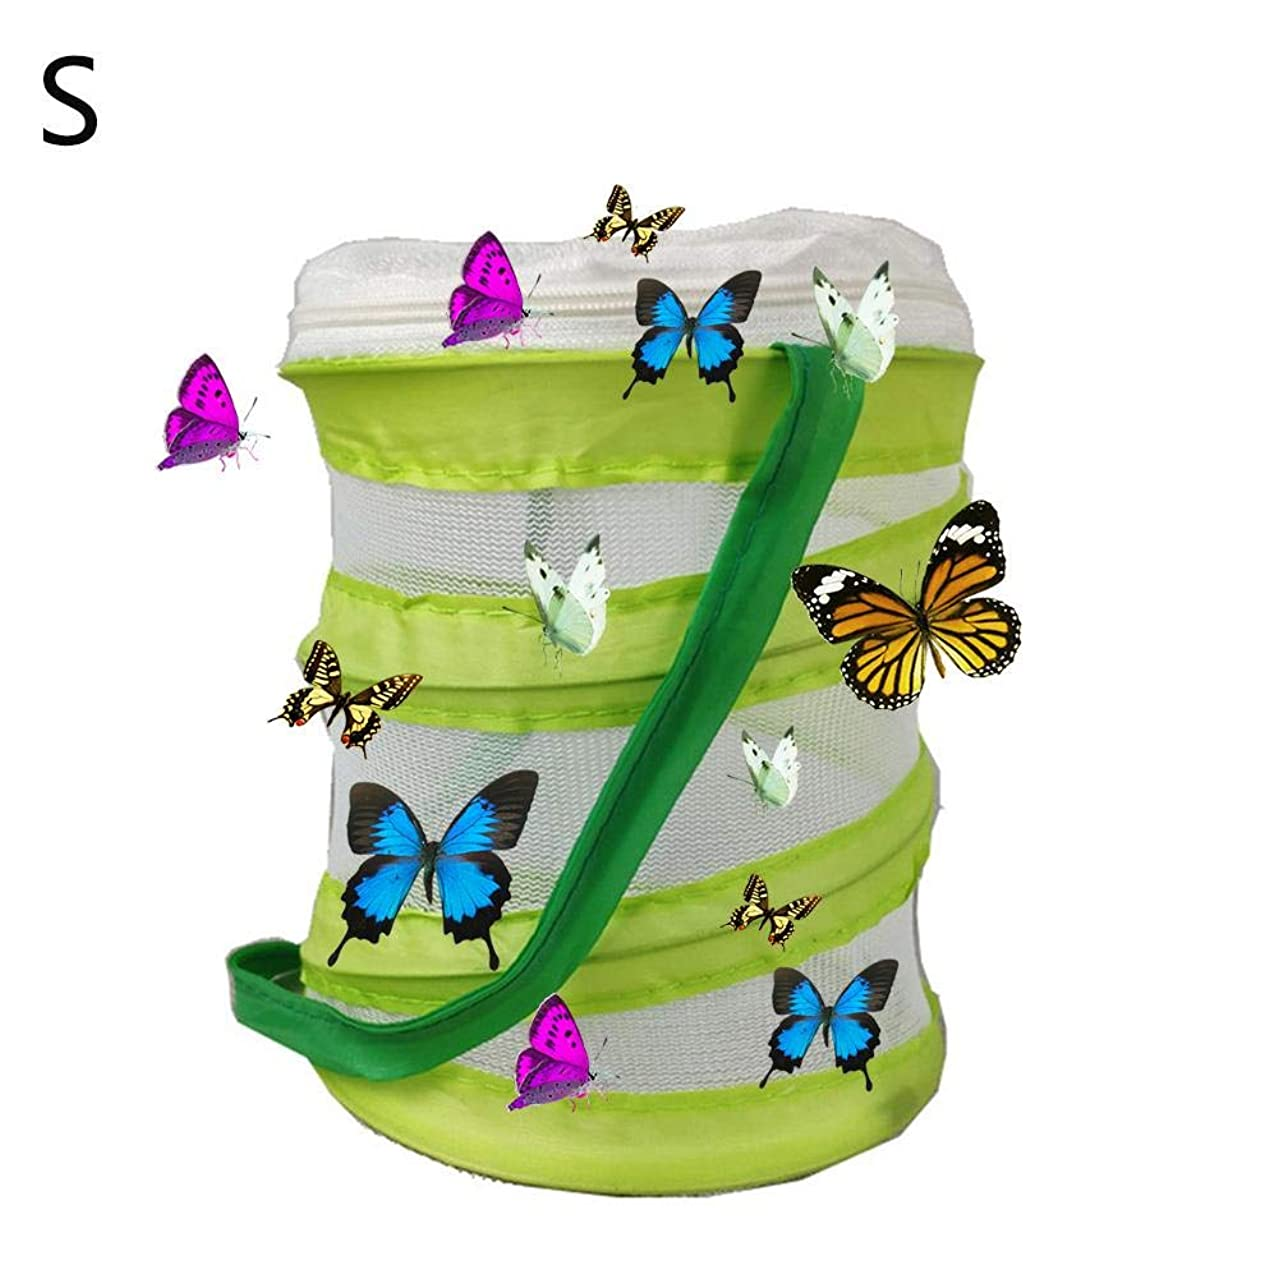 oftenrain 1 Pack Insect and Butterfly Habitat, Butterfly Cage Insect Breeding Net Outdoor Garden Insect Feeding Observation Box Insect Growing Kits for Kids